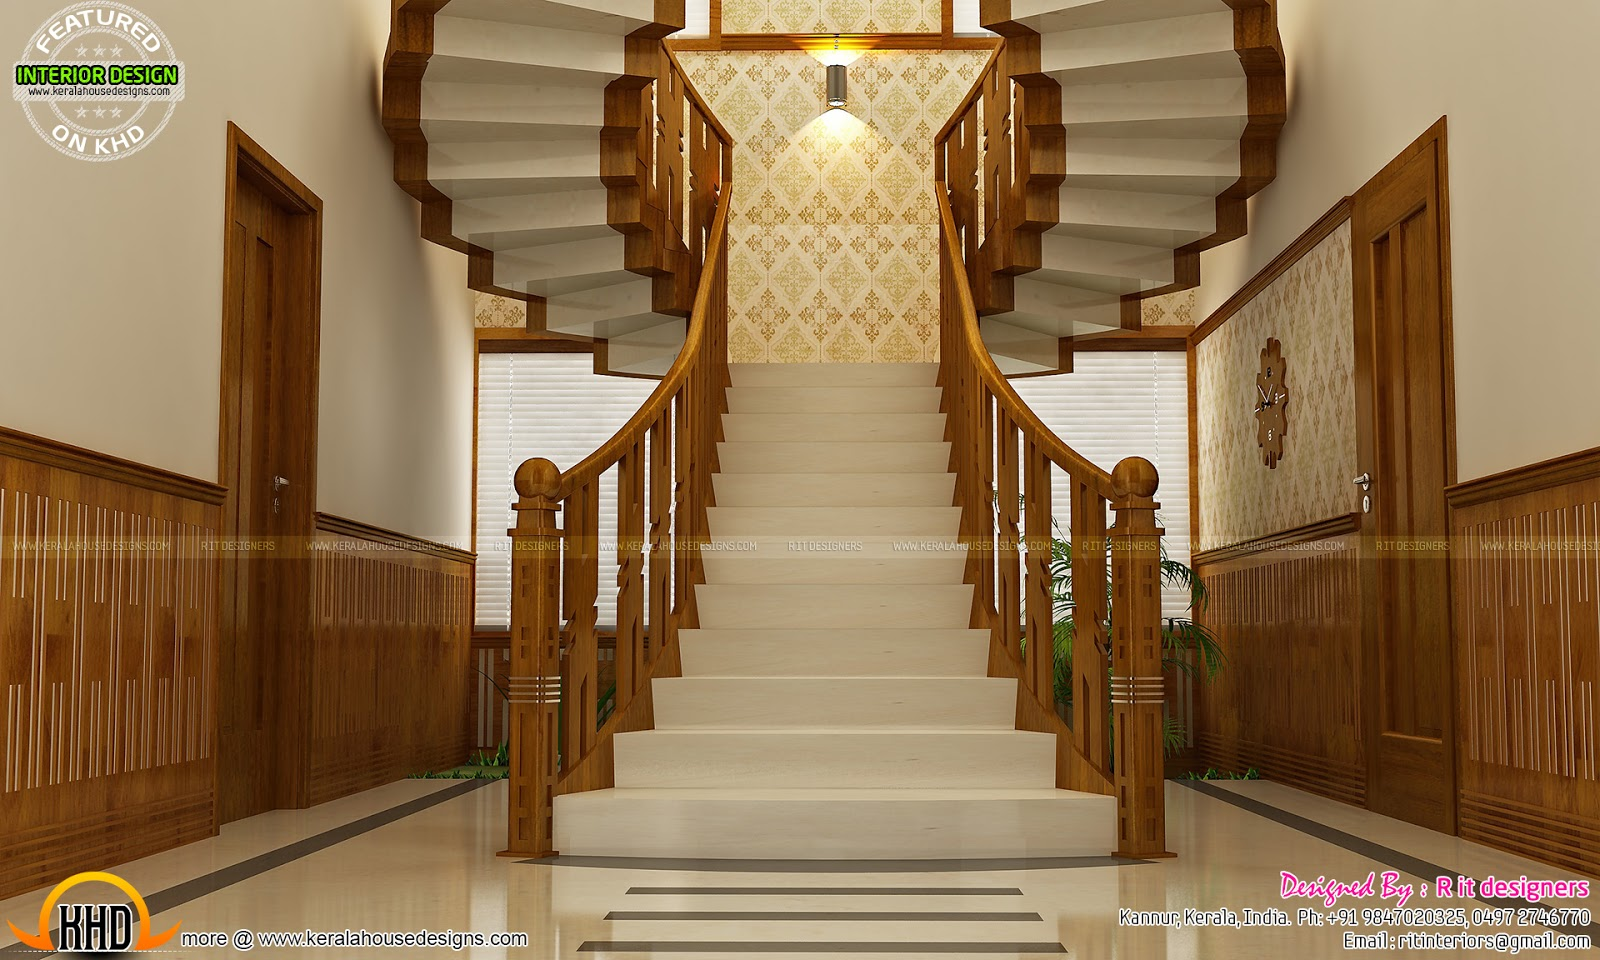 Main bedroom bifurcated stair living and courtyard for Interior design ideas for small homes in kerala